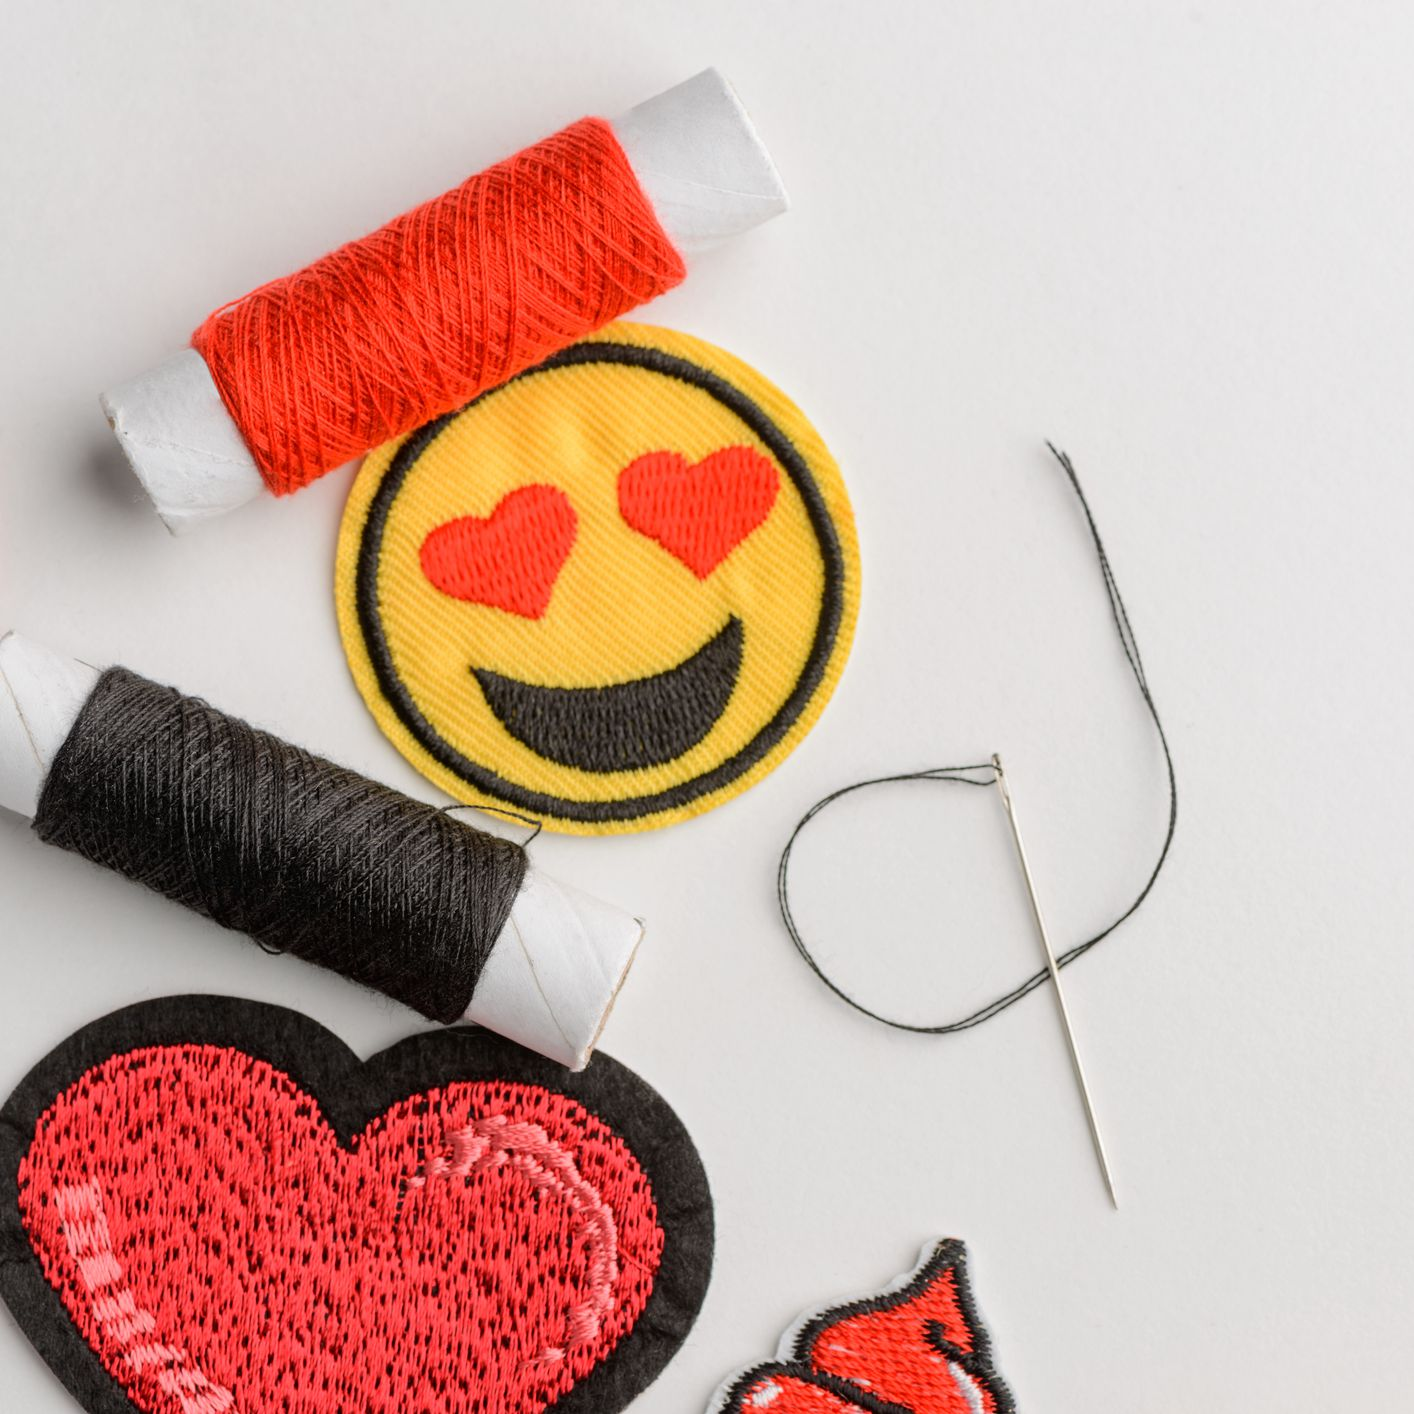 Rad Heart Stick-on Patch Hand Embroidered